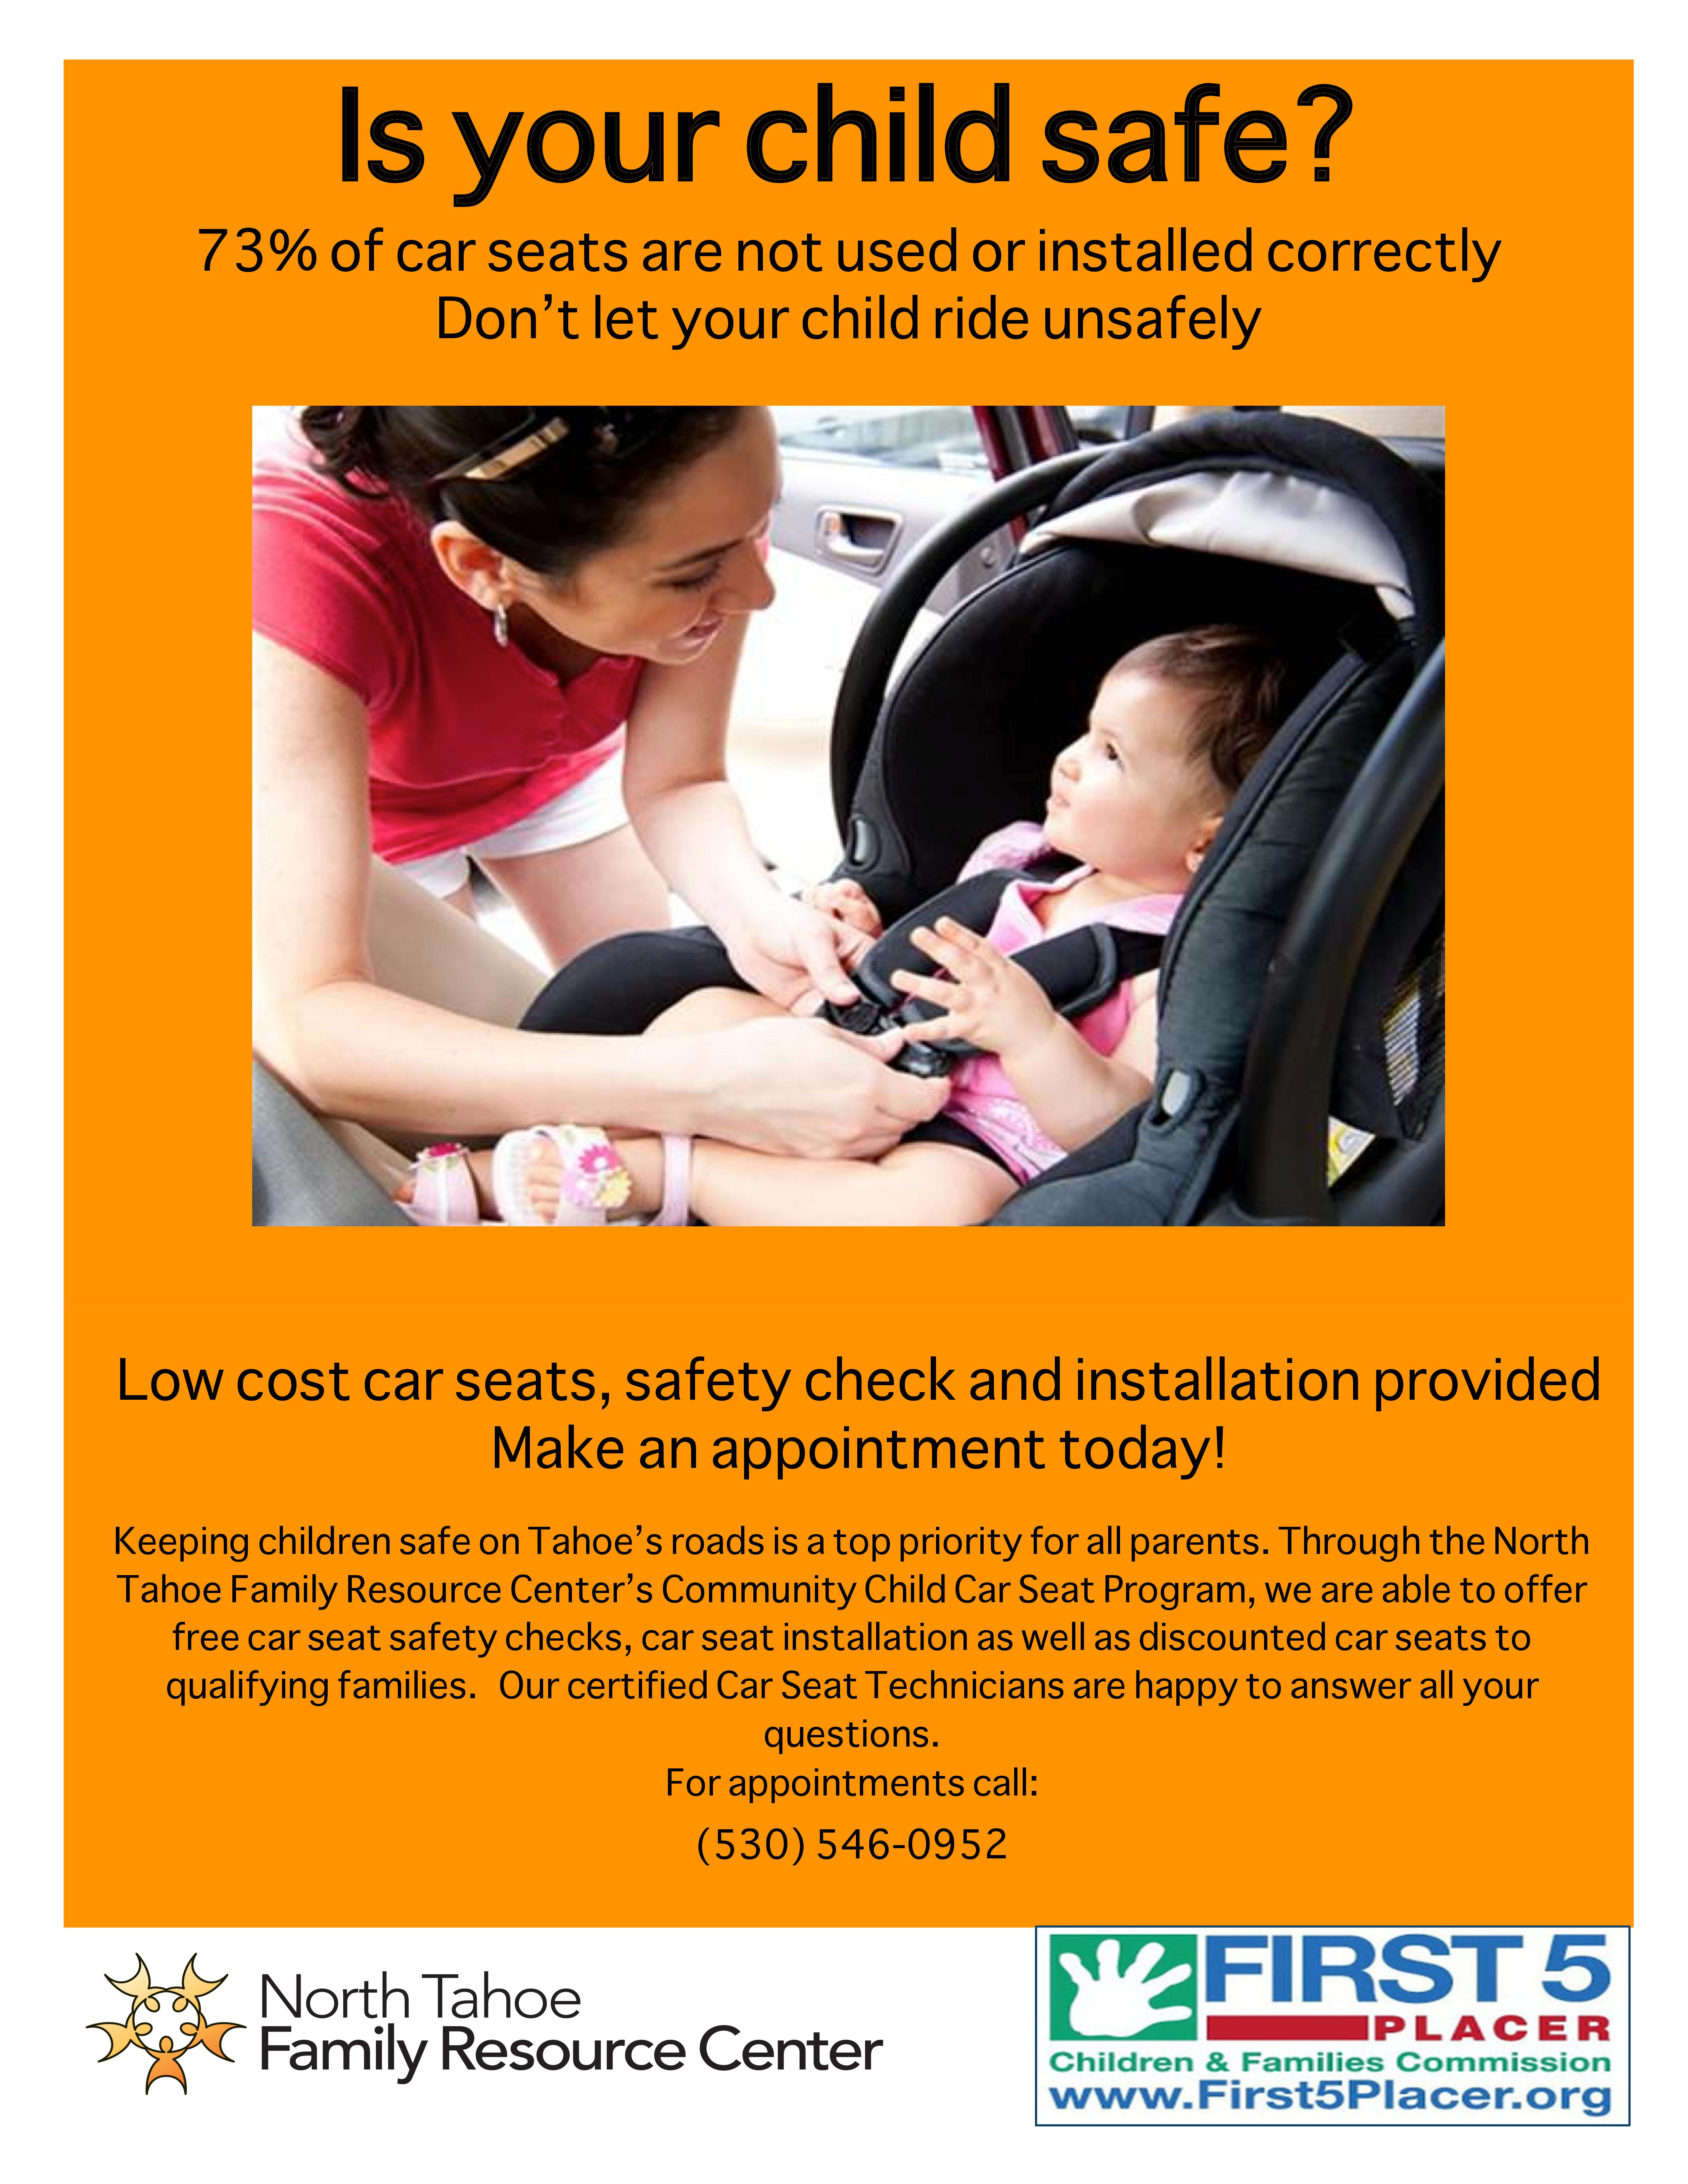 On Site Car Seat Technicians That Can Help You Install A For FREE